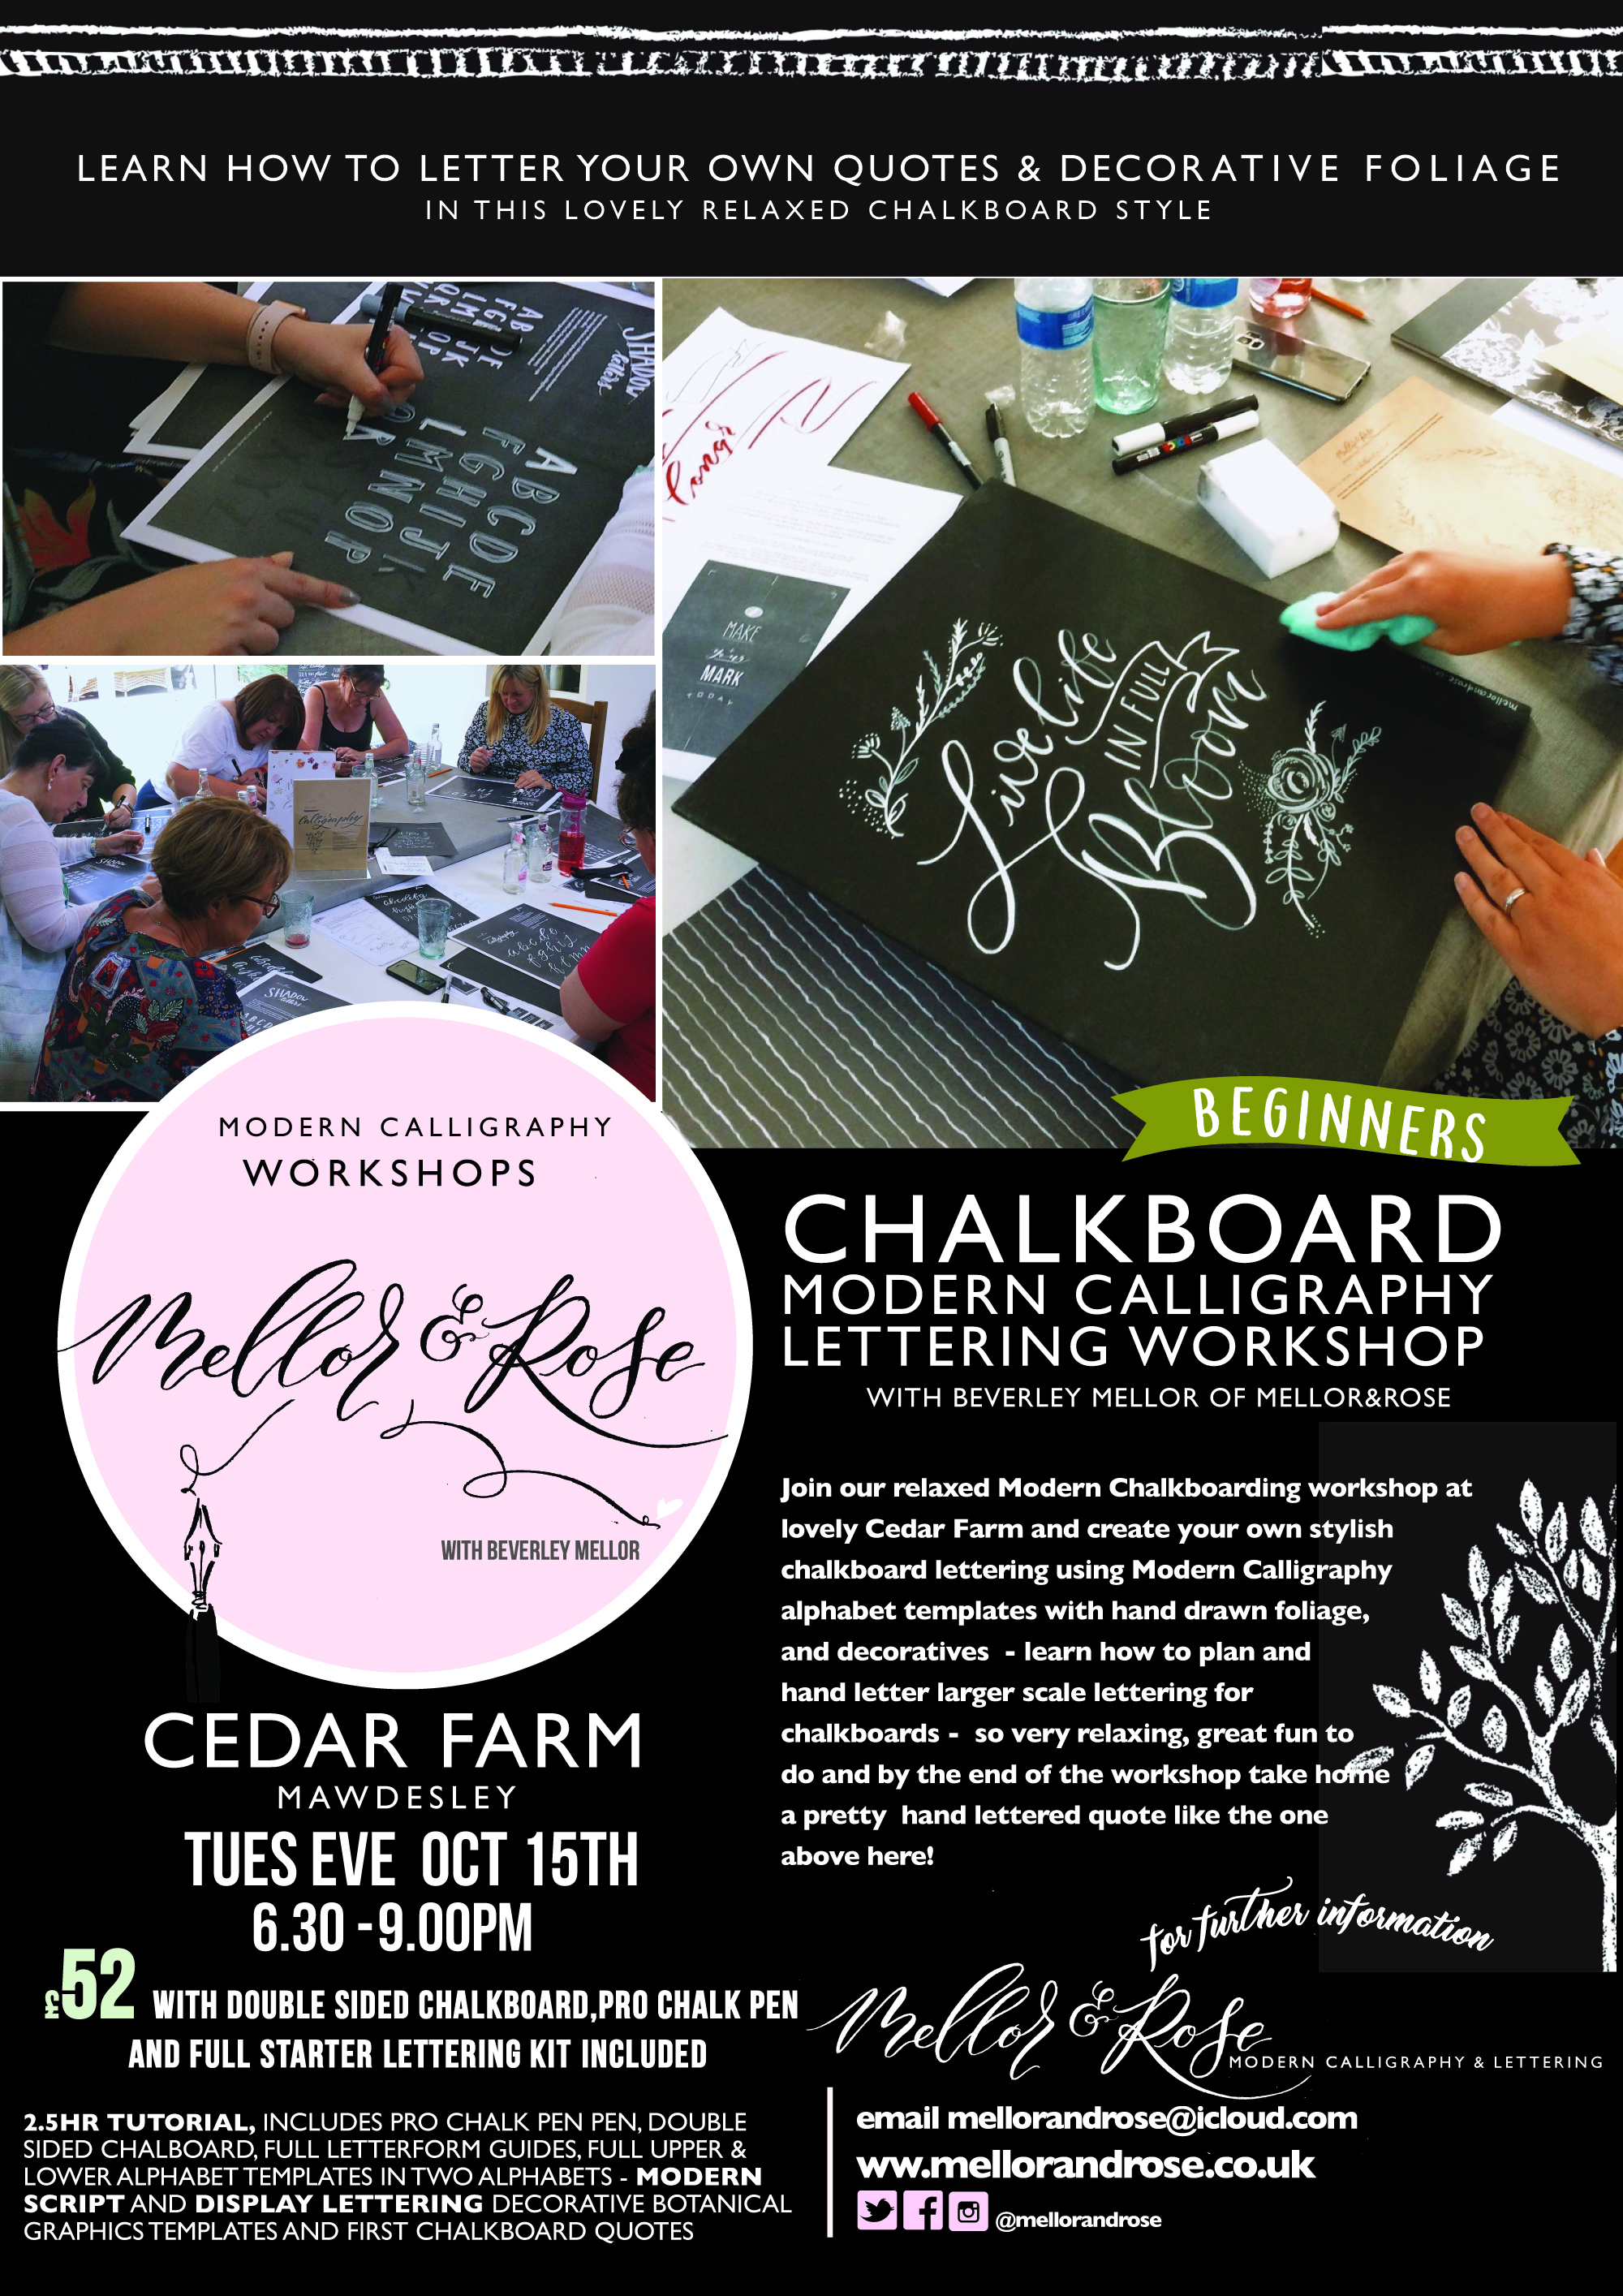 Chalk Lettering workshop with Mellor and Rose // Mellor & Rose Lancashire